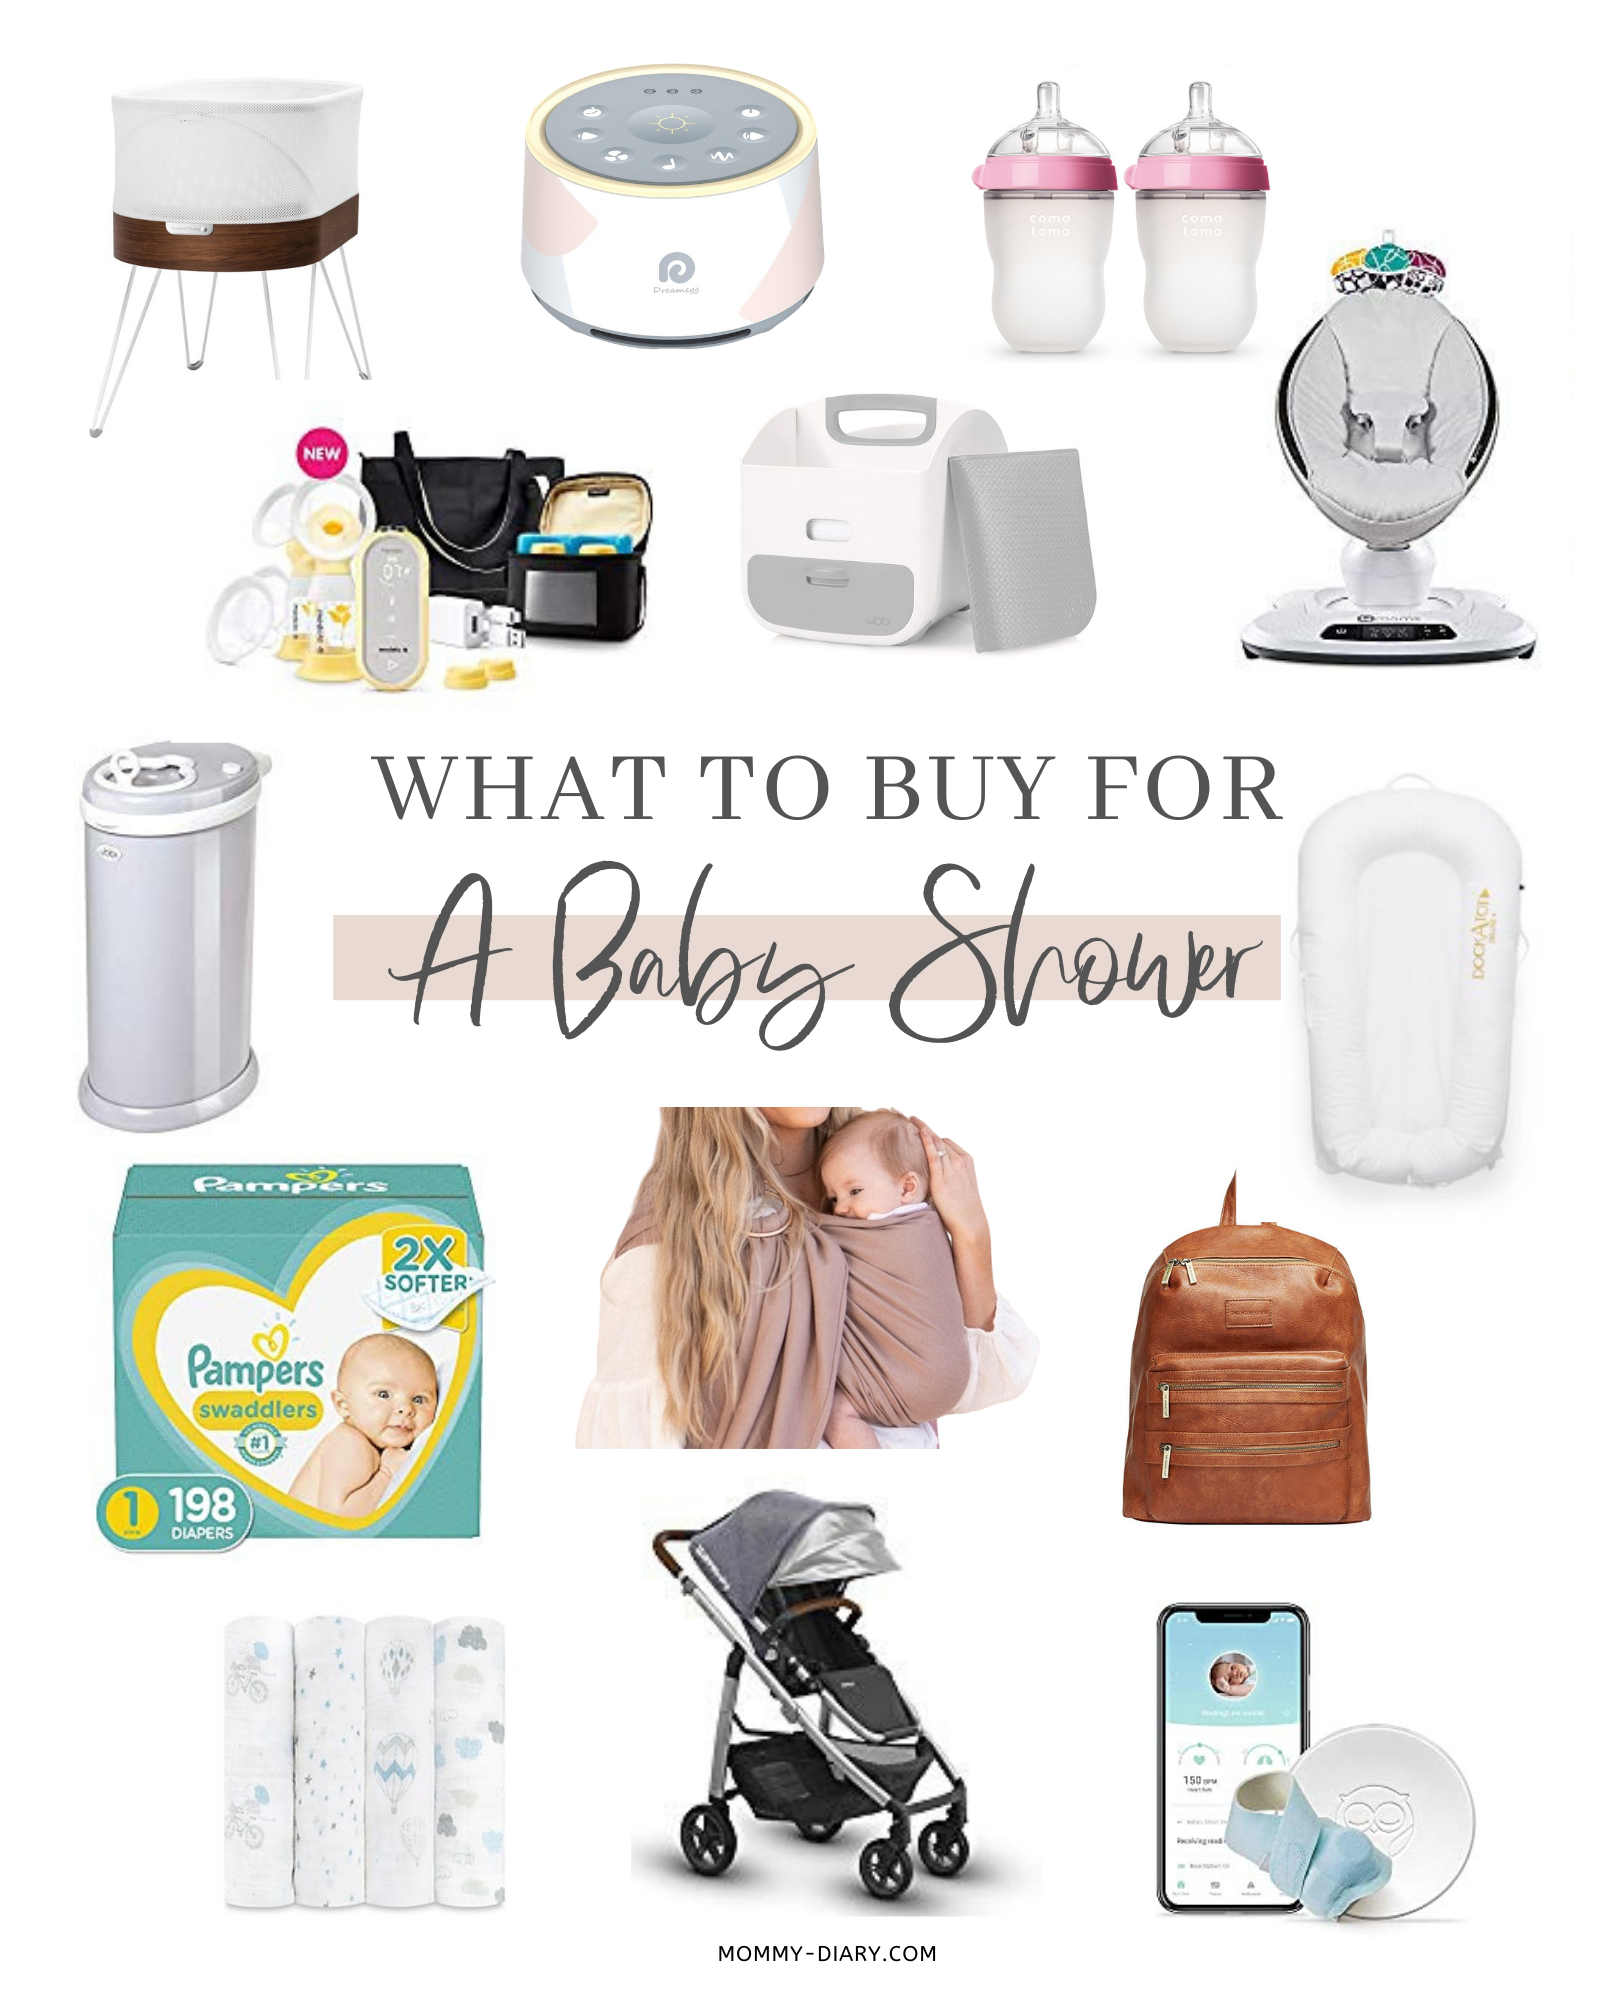 What to Buy for a Baby Shower